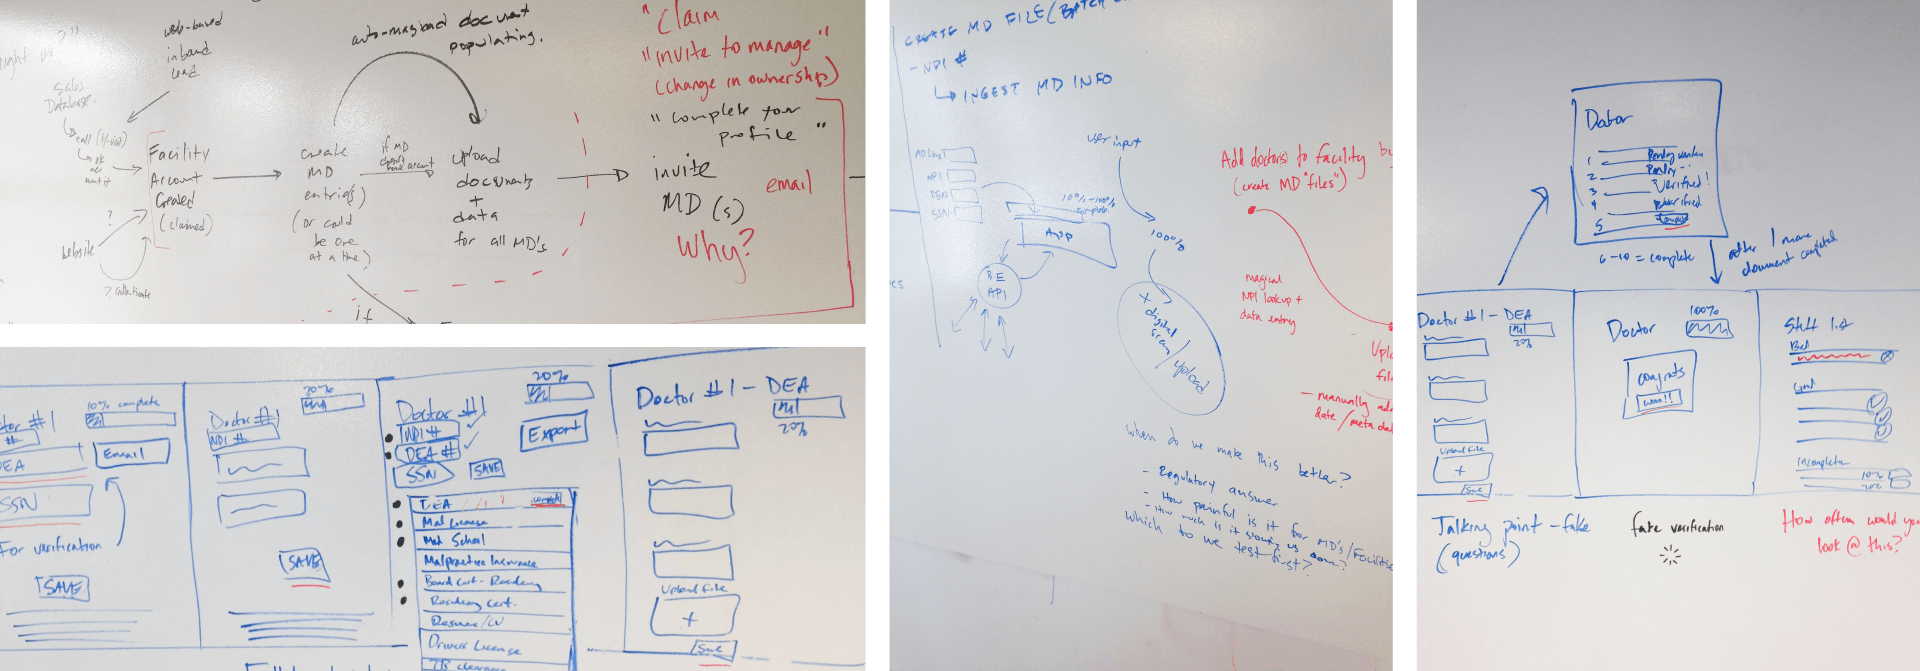 4 images of writing on a whiteboard from the Silversheet design sprint